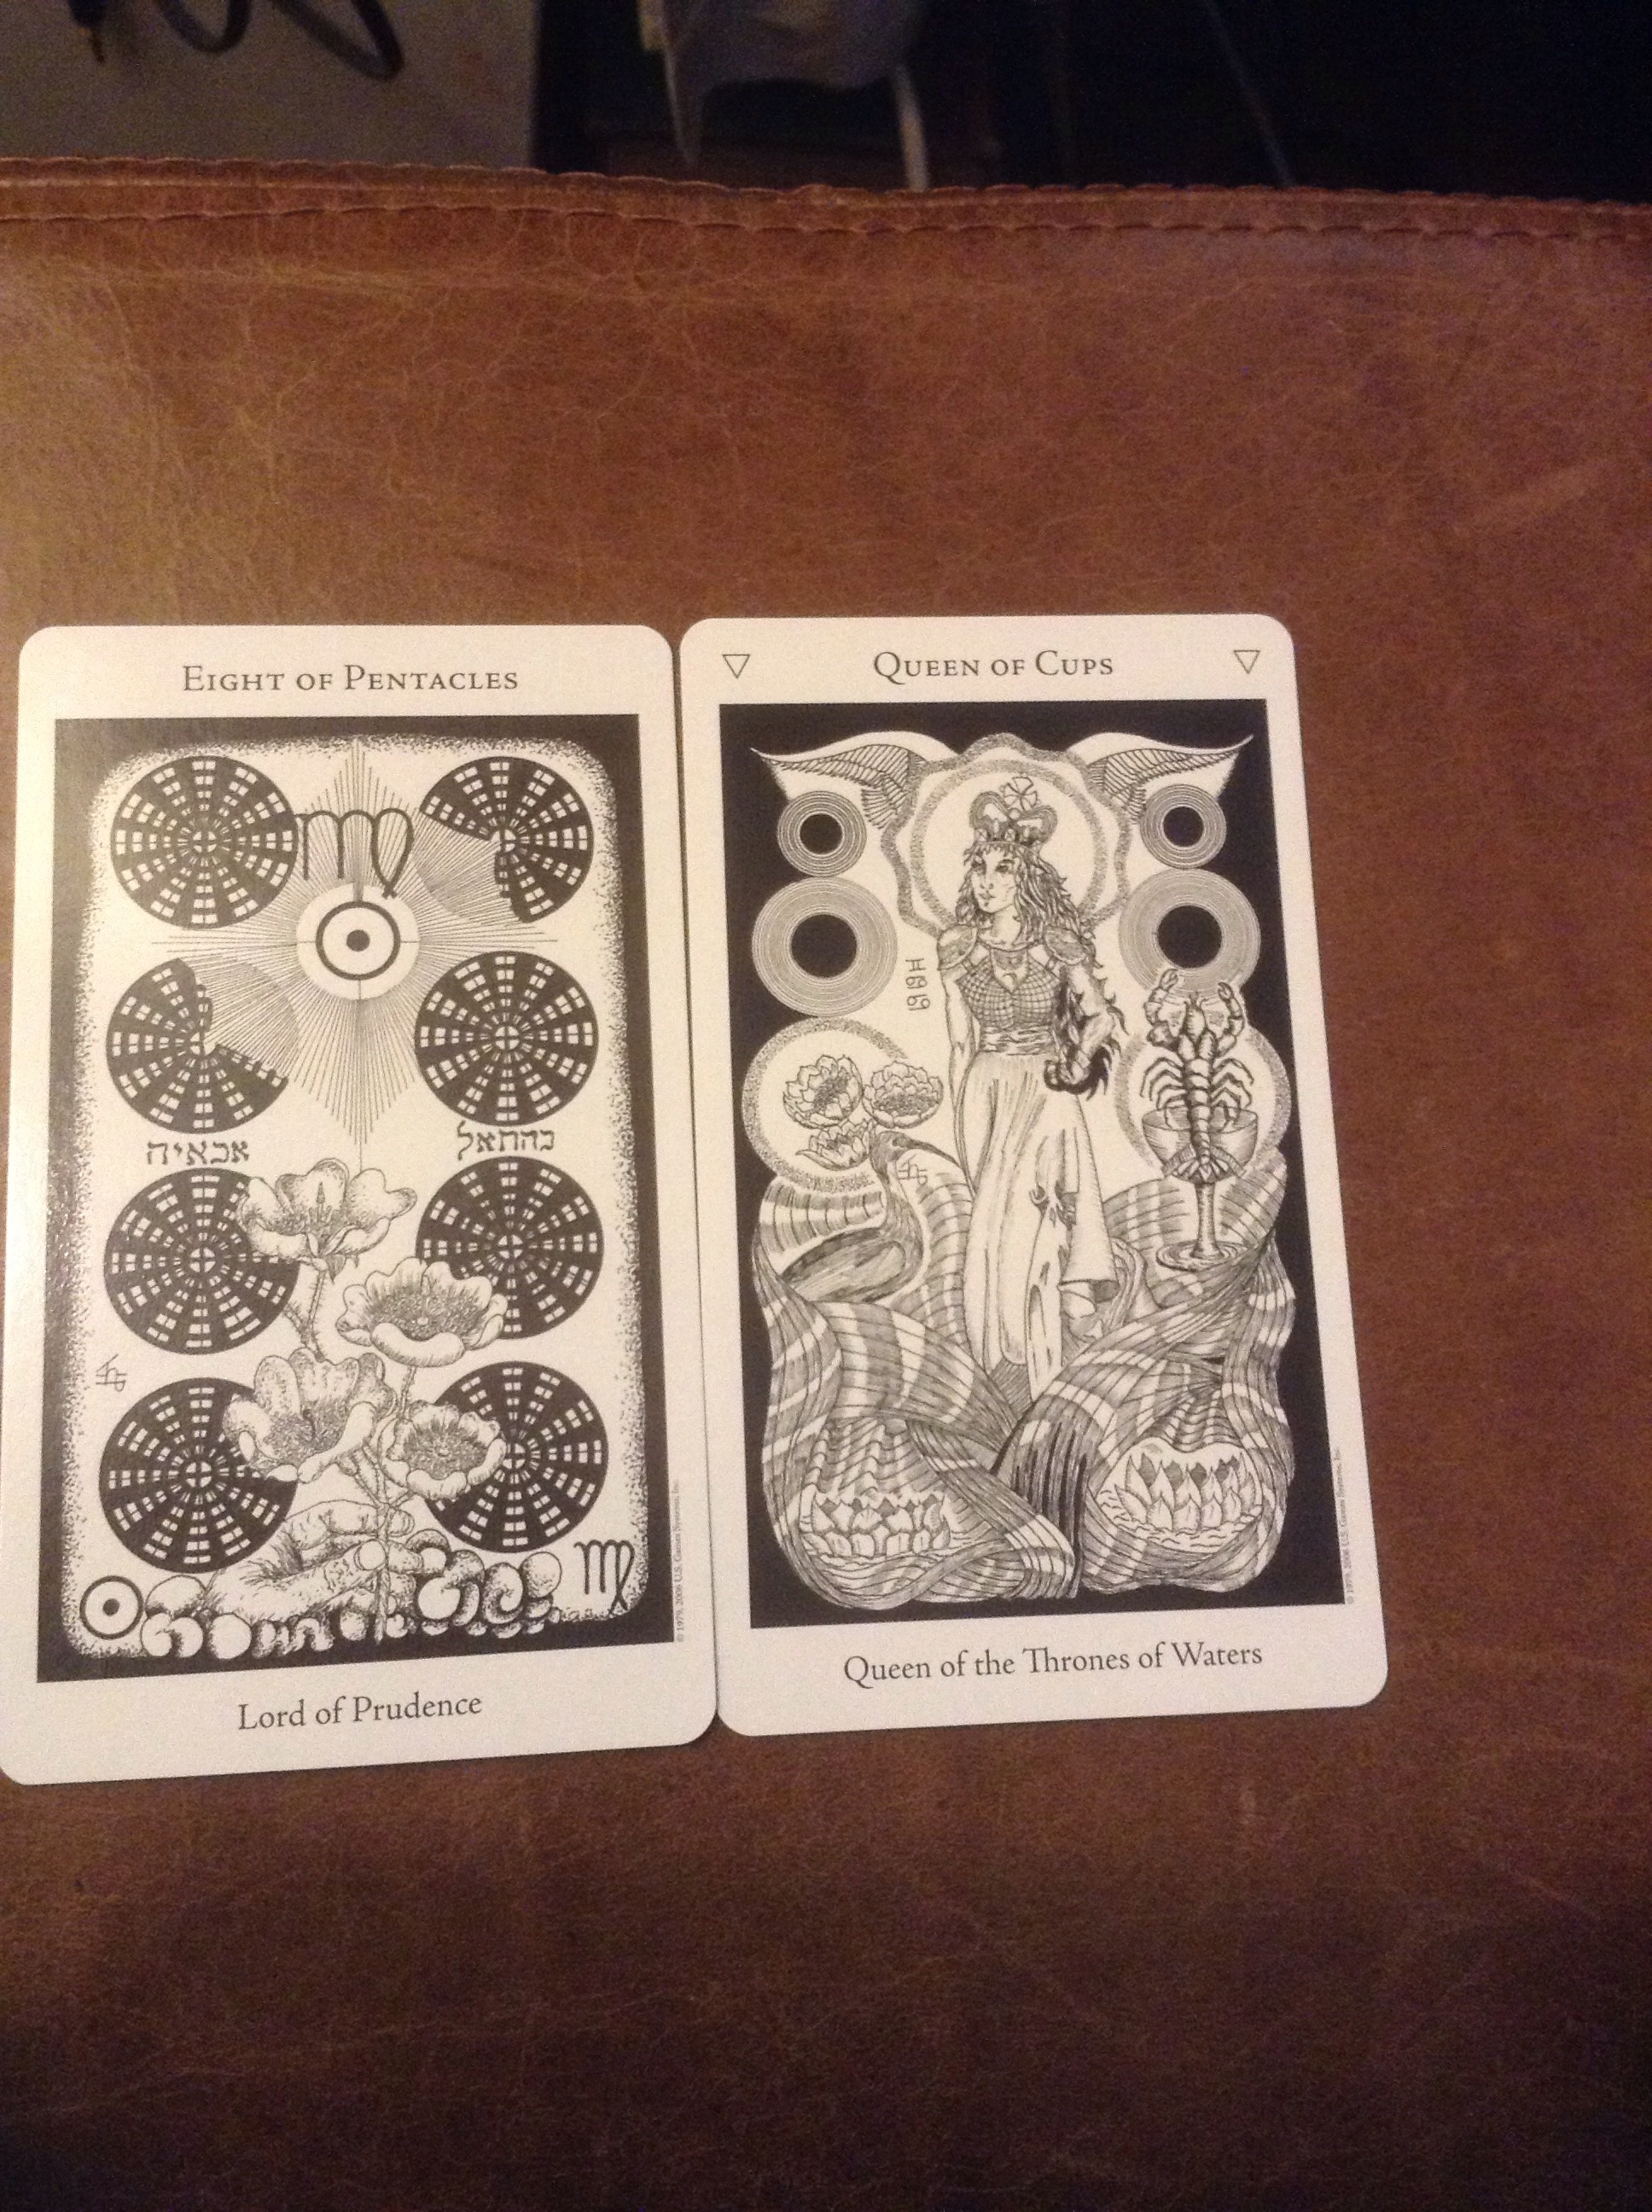 Understanding Tarot The Star: 8 Of Pentacles And Queen Of Cups As Advice